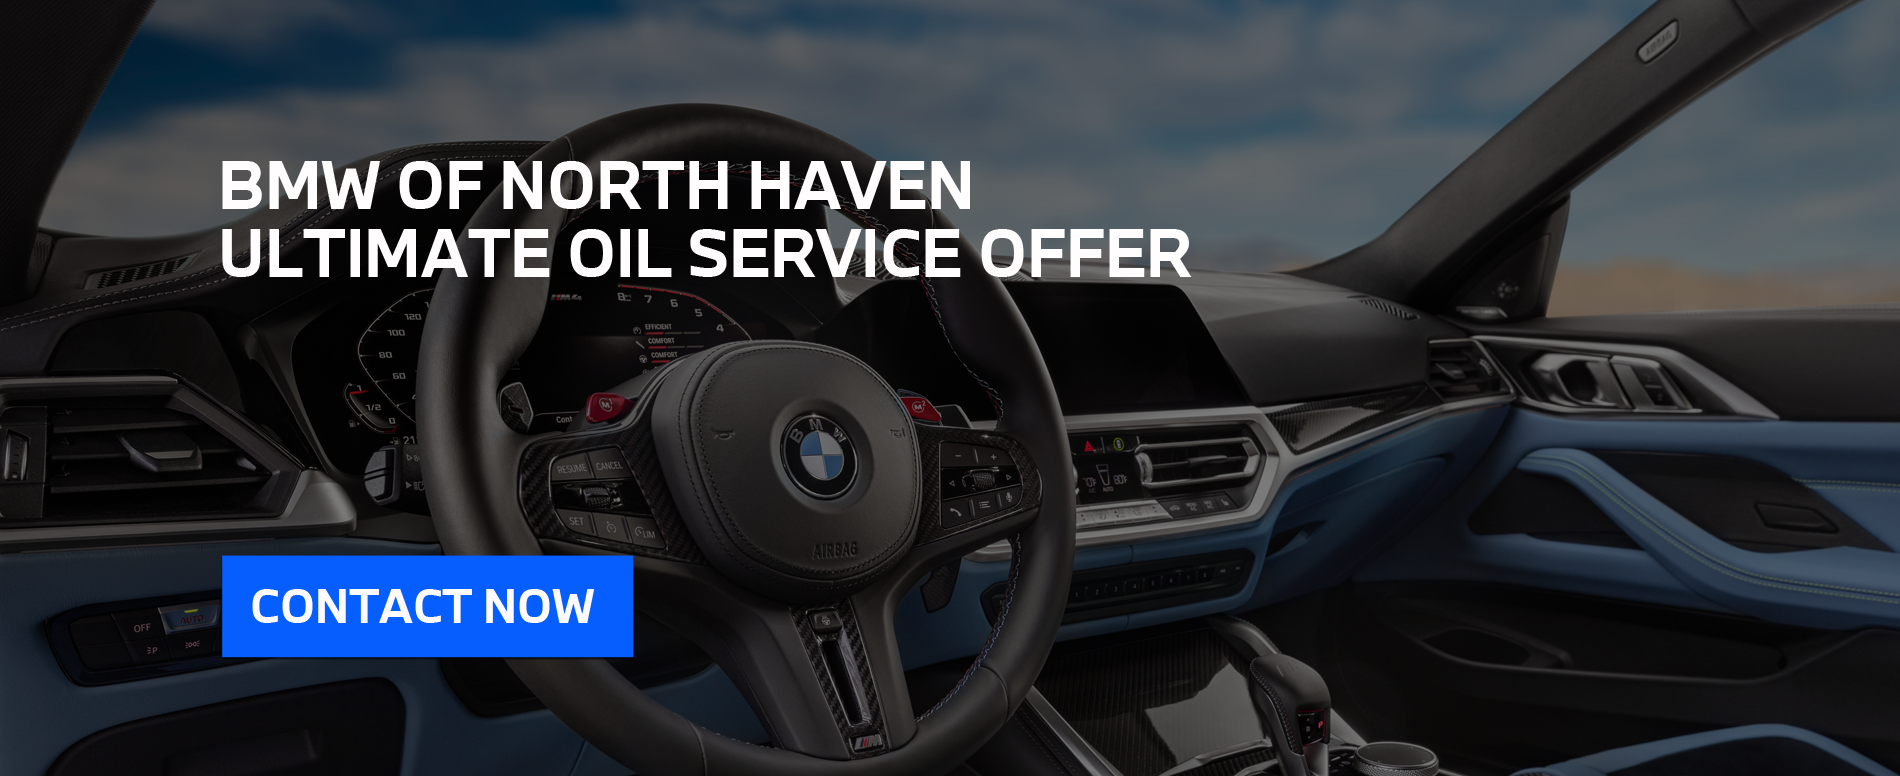 BMWNH Ultimate Service Offer Hero Image